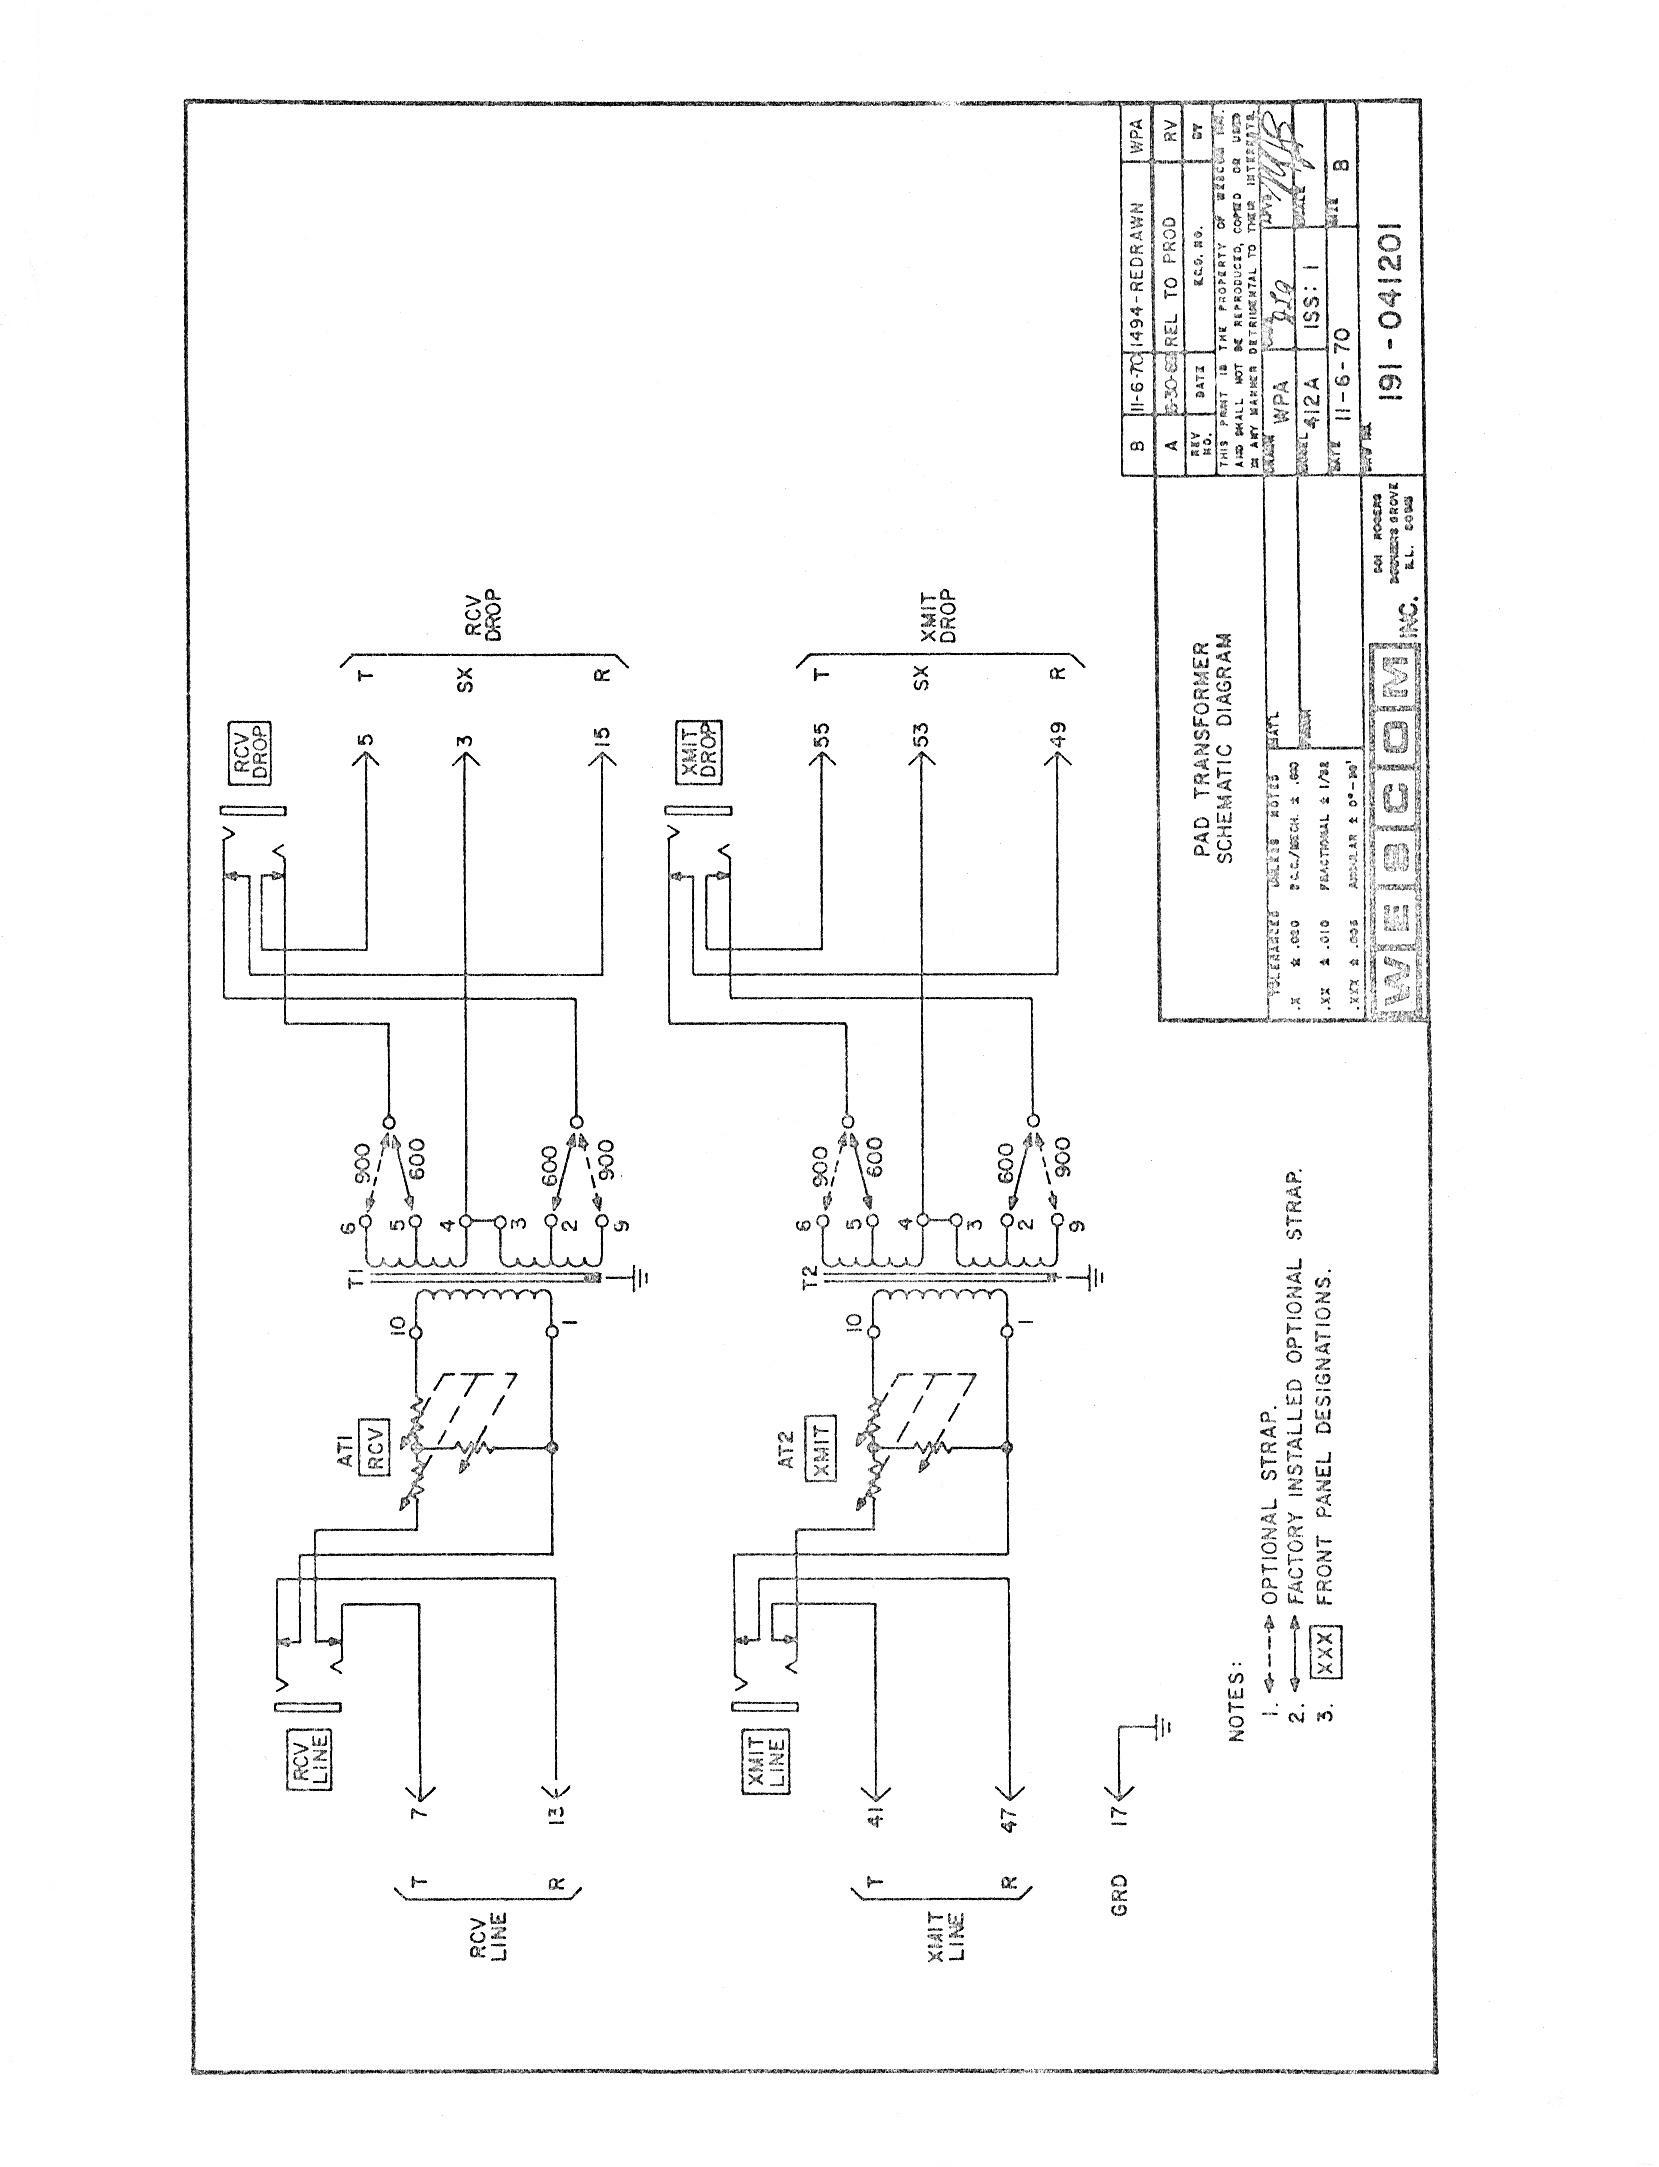 pad mount transformer wiring diagram Download-pad mount transformer wiring diagram Collection 412A pad transformer schematic 16 t DOWNLOAD Wiring Diagram Detail Name pad mount transformer 19-f